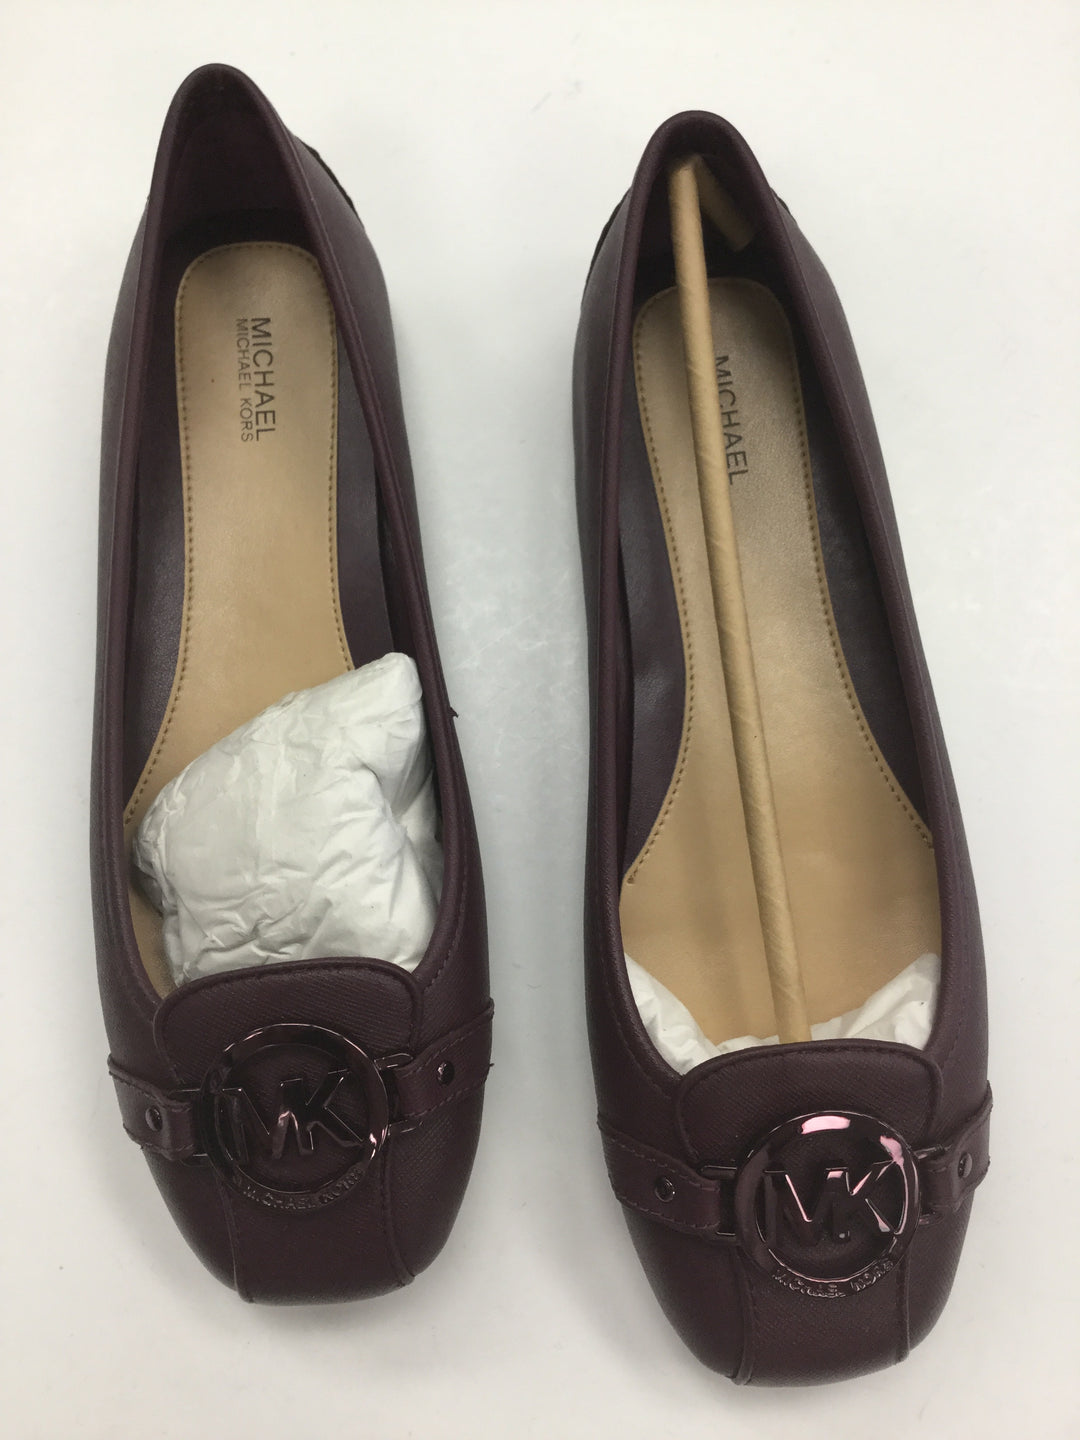 Primary Photo - BRAND: MICHAEL BY MICHAEL KORS <BR>STYLE: SHOES FLATS <BR>COLOR: MAROON <BR>SIZE: 9 <BR>SKU: 155-15545-207101